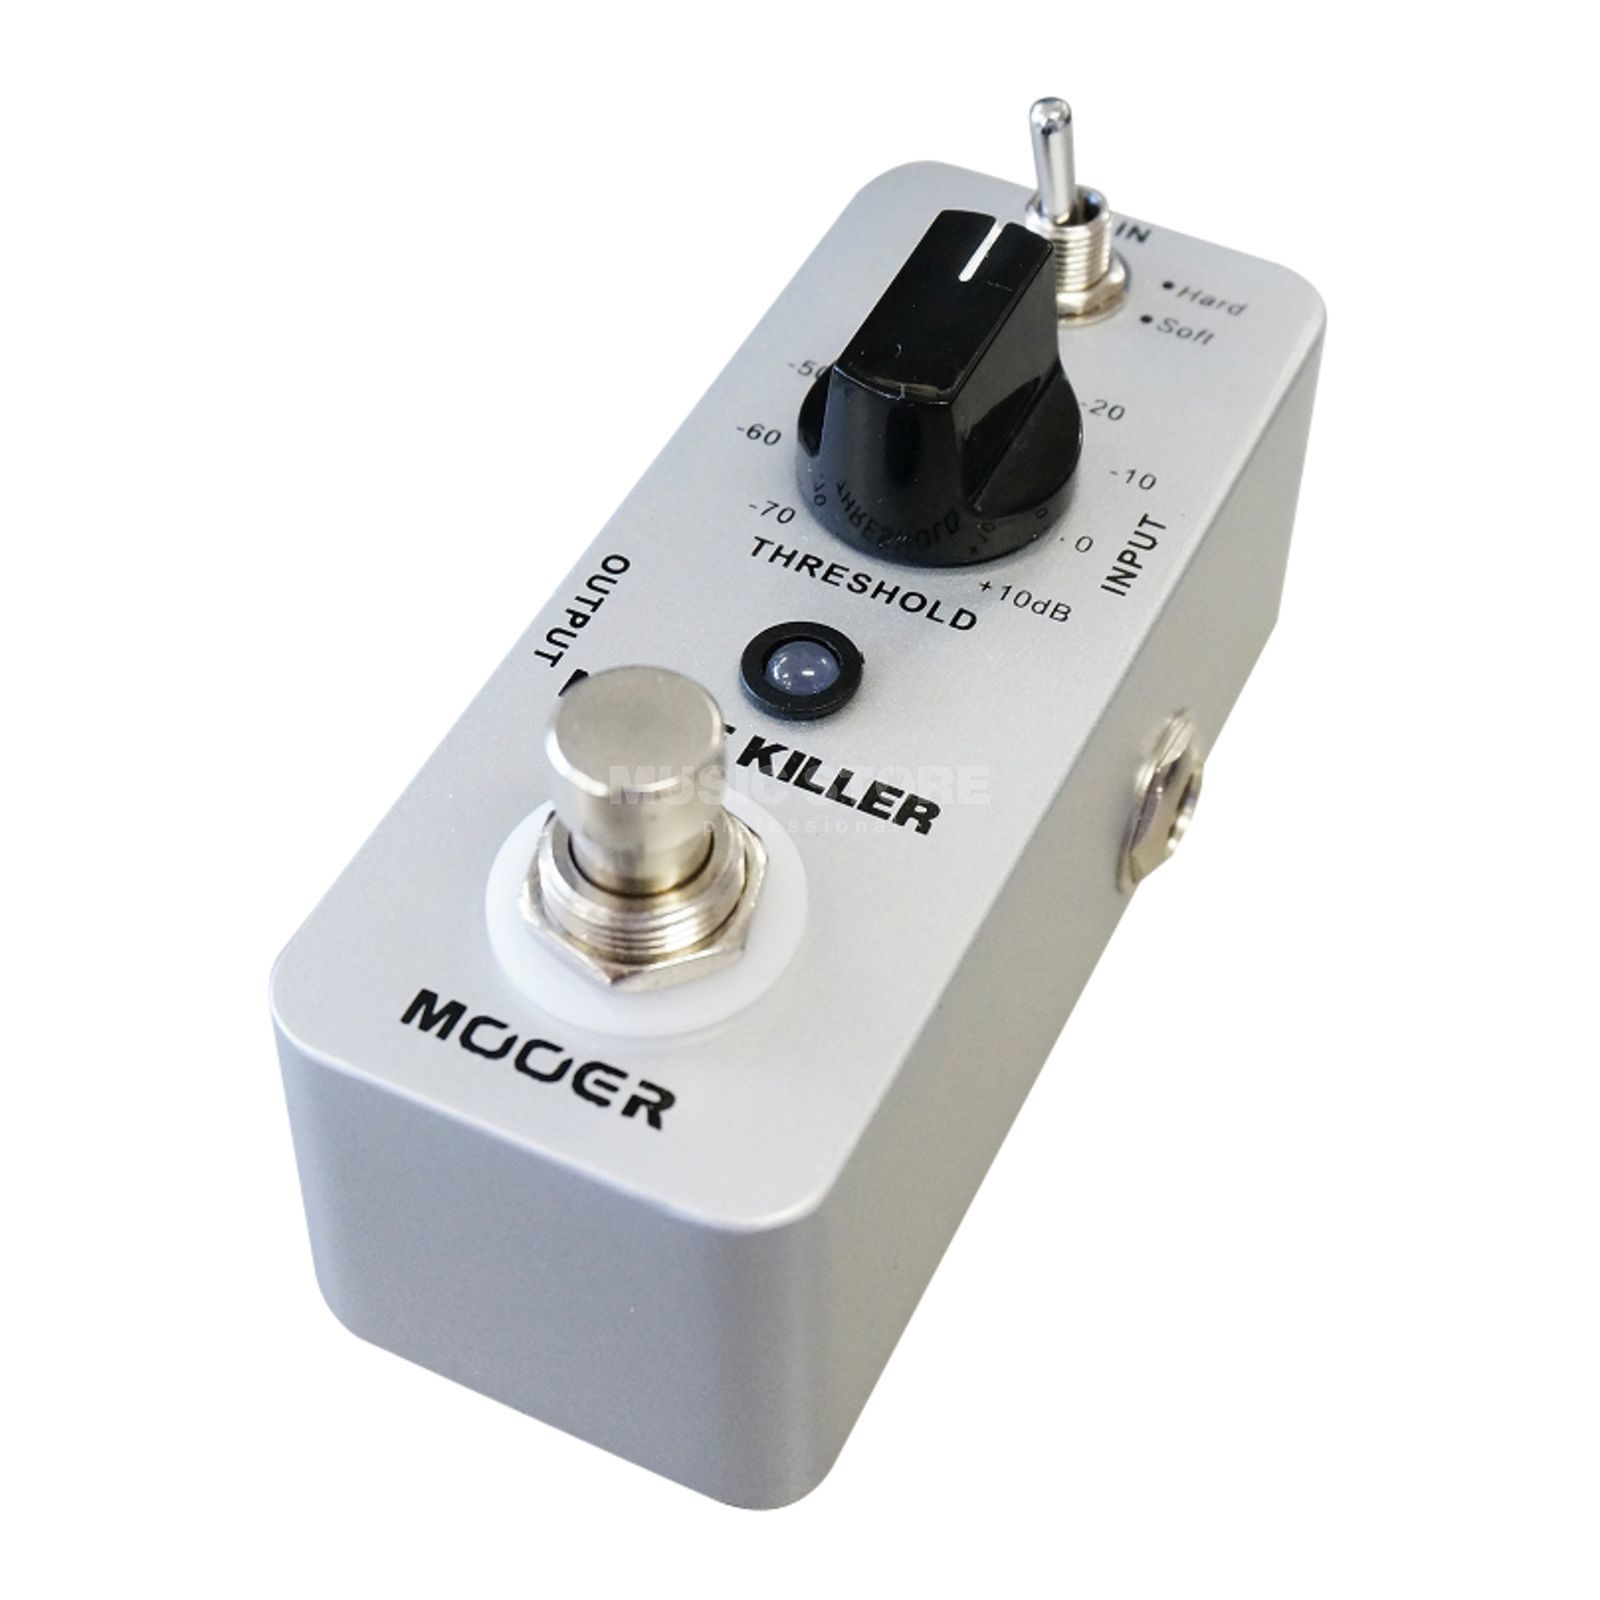 Mooer Audio Noise Killer Noise Reducer/Noise Gate Produktbild